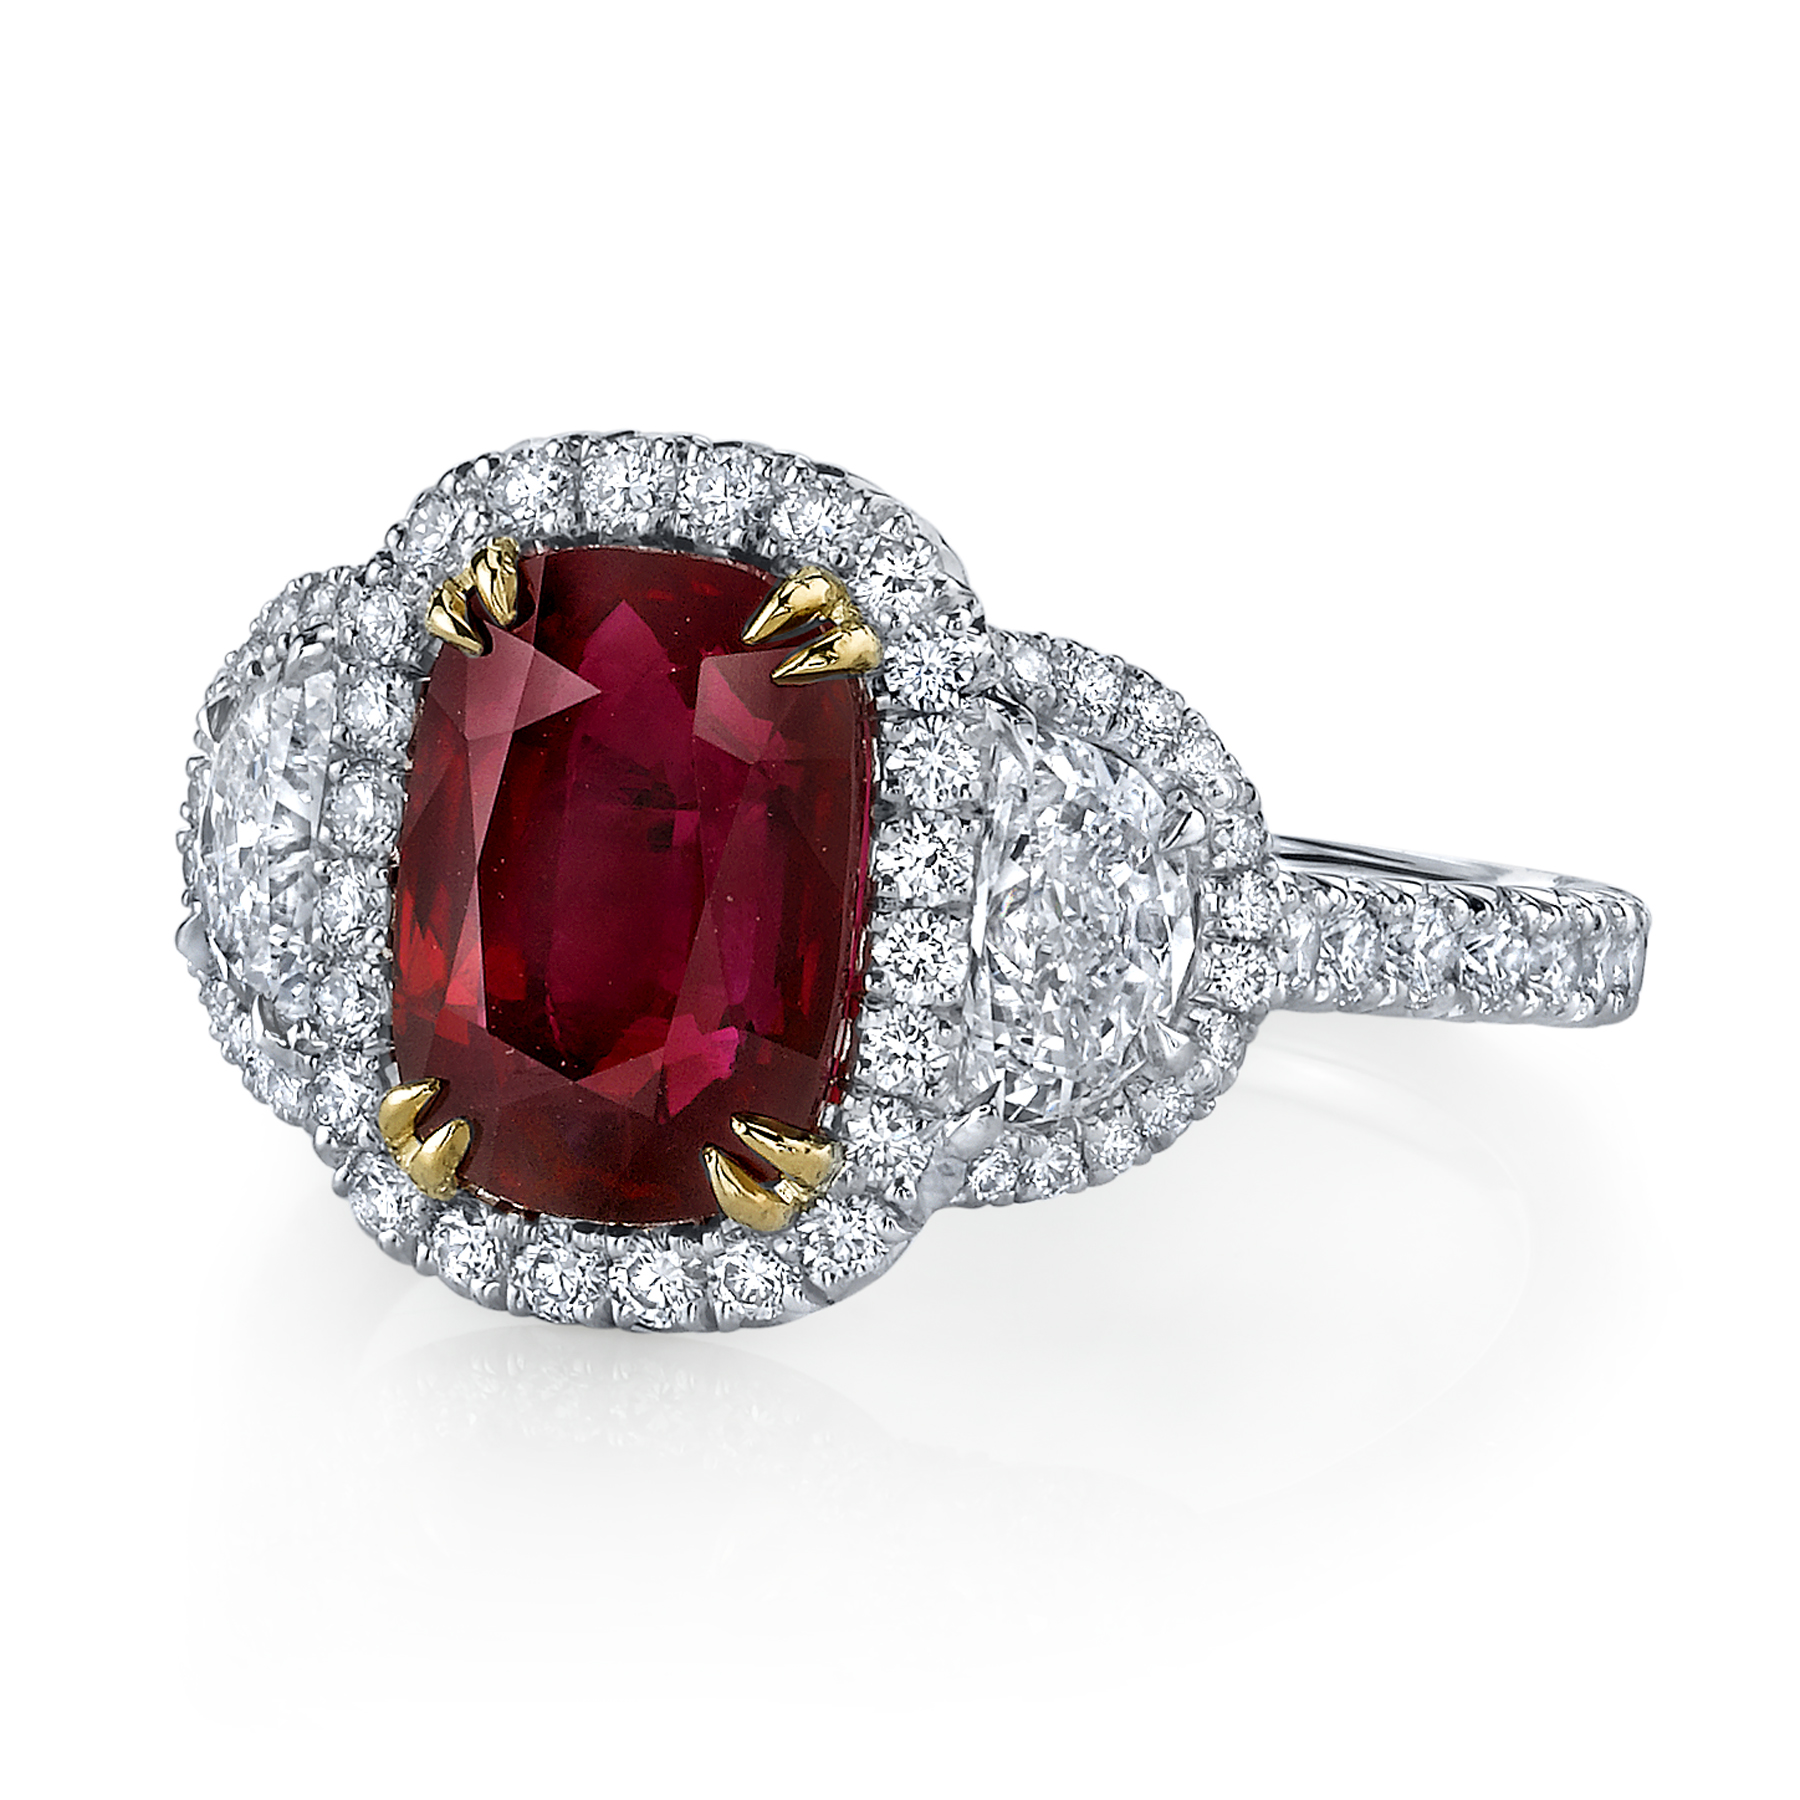 omi privé paints the wedding red with rubies and diamonds on my